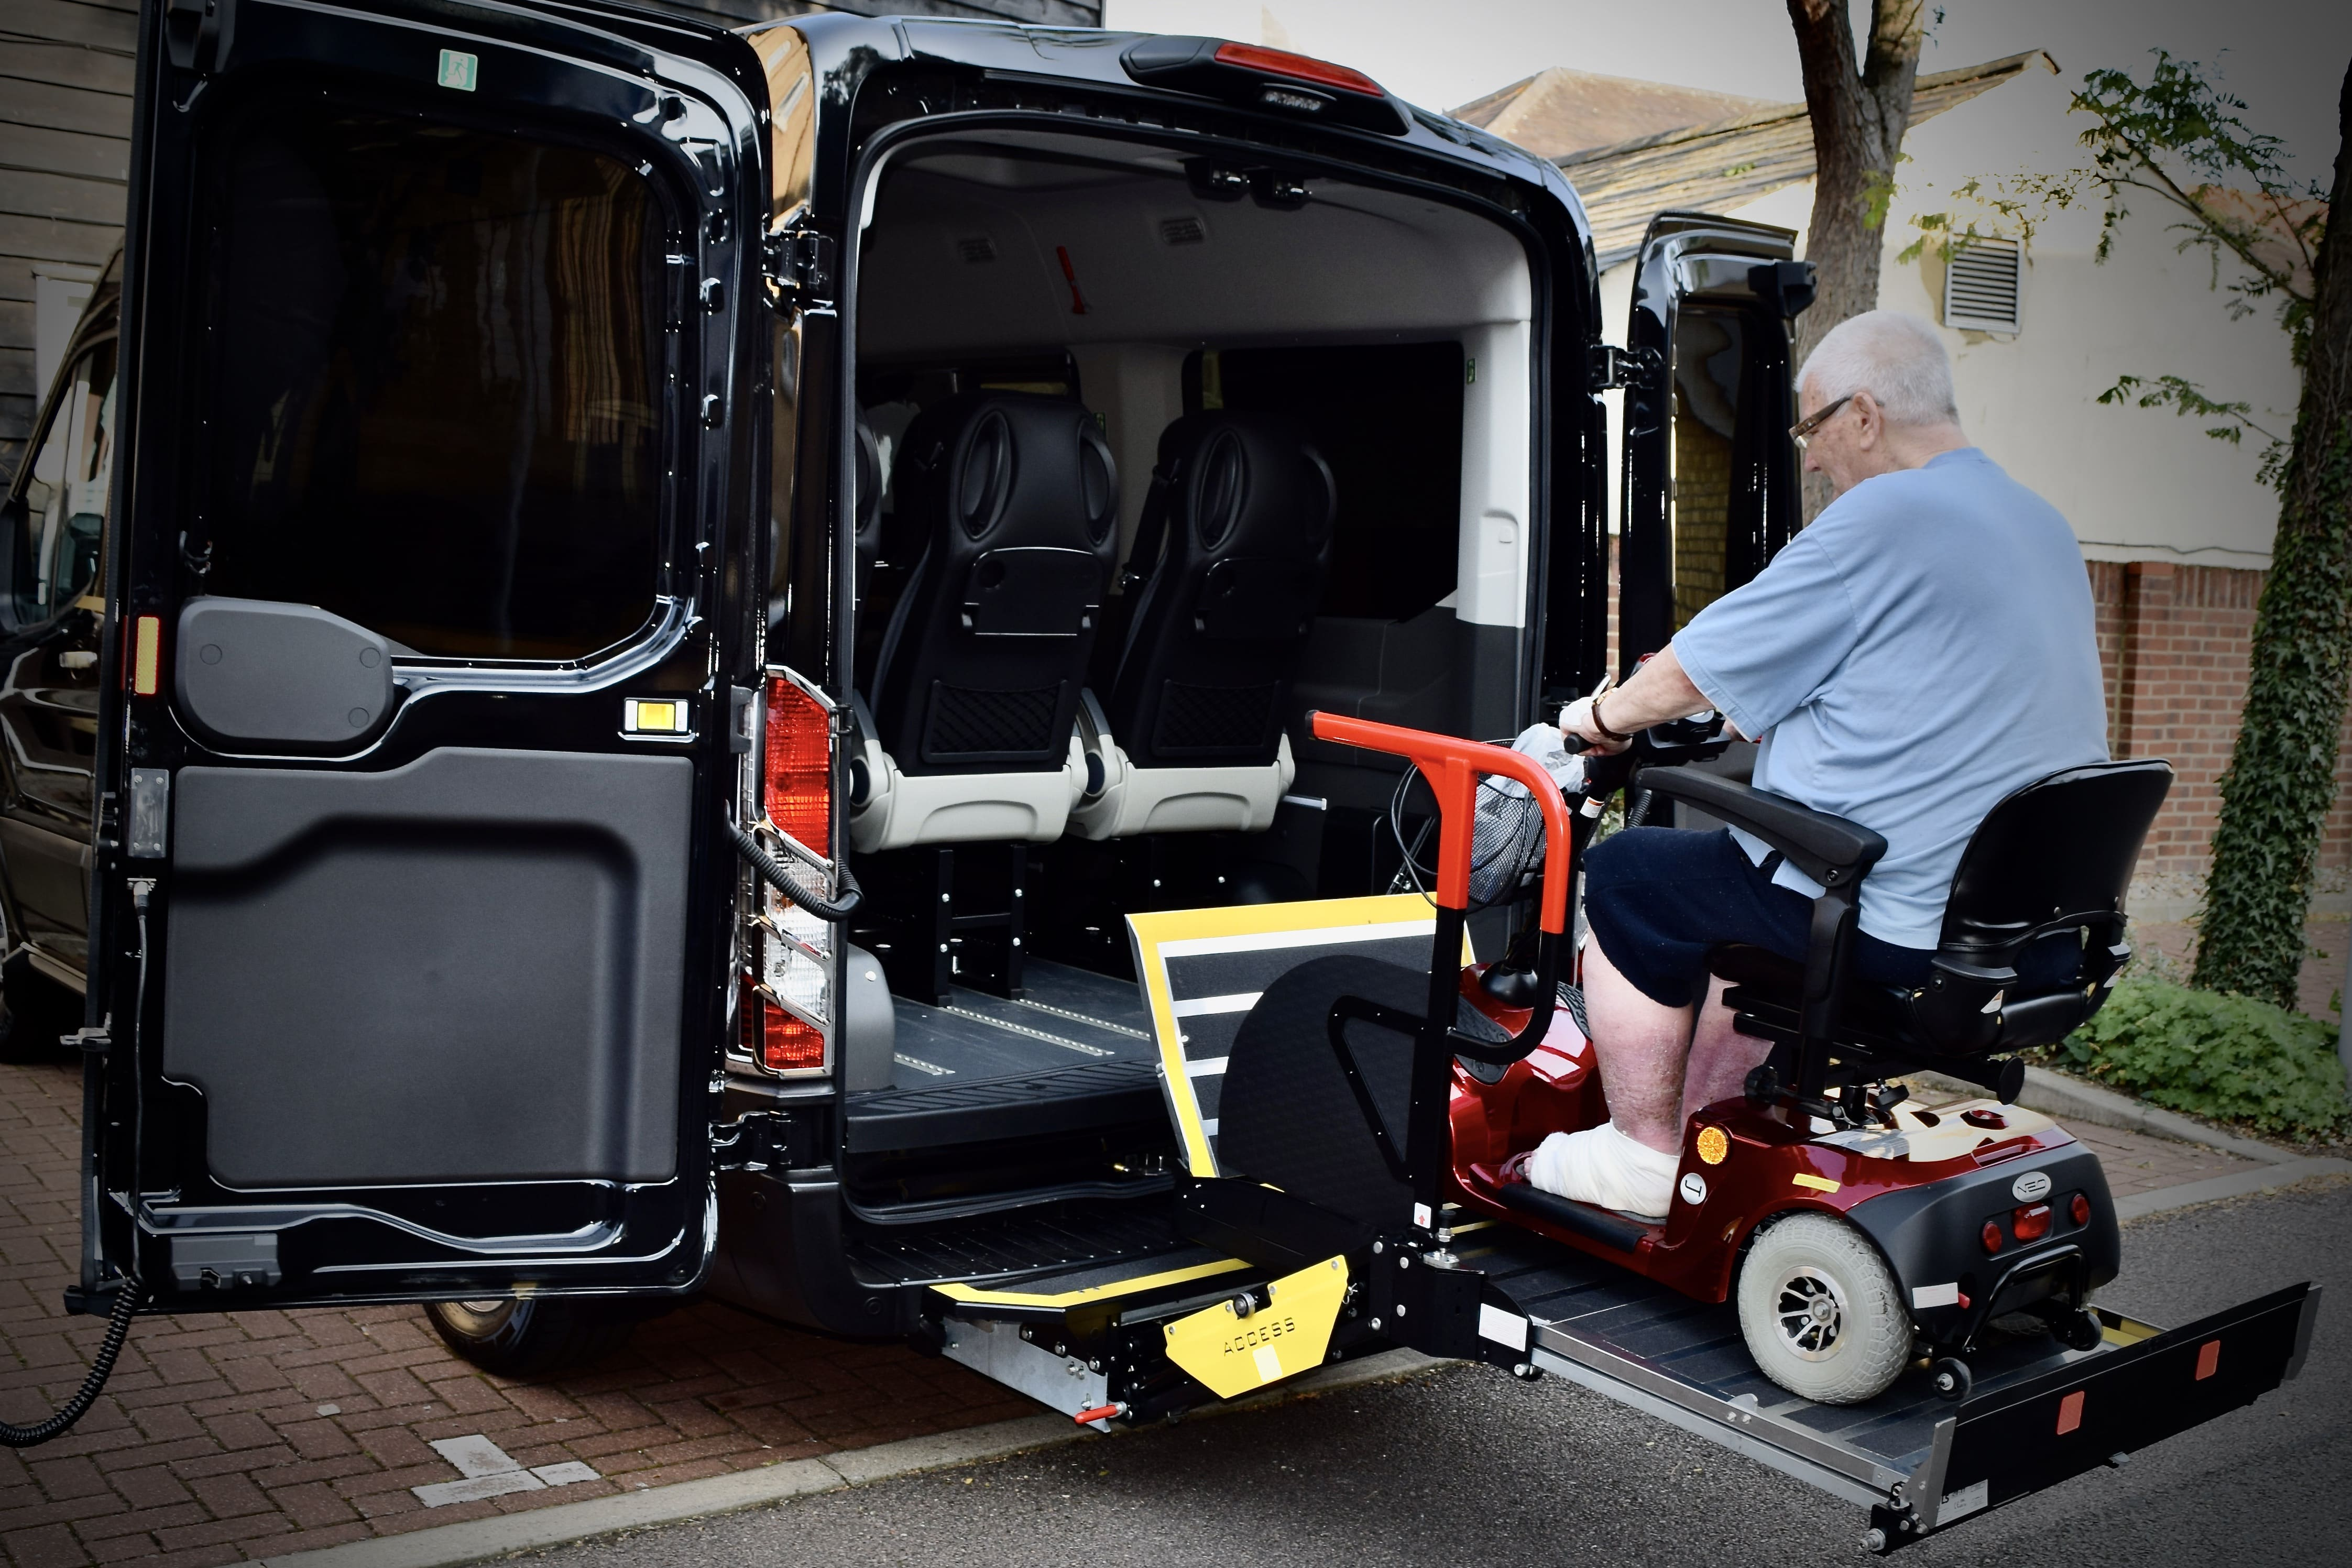 Showing the operation of the wheelchair access with tail gate